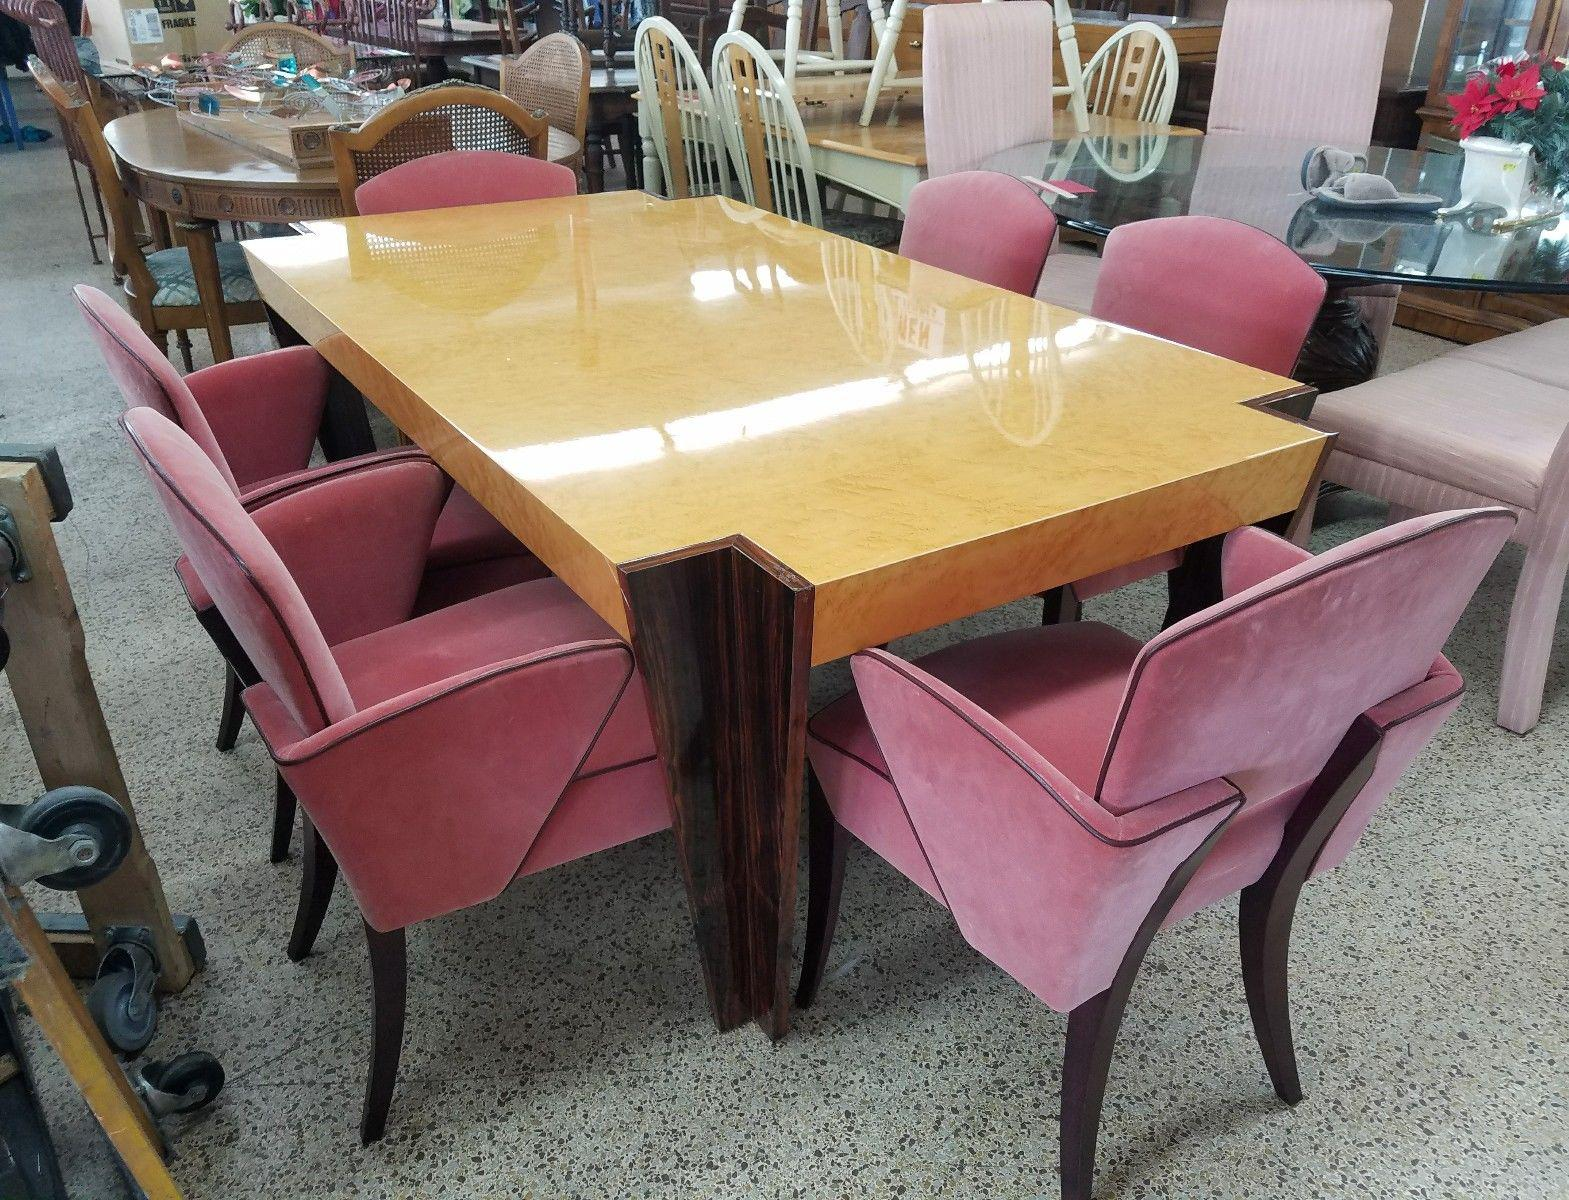 Italian Art Deco Revival Rosewood   Birdseye Maple Dining Set For Sale In  Miami   Image